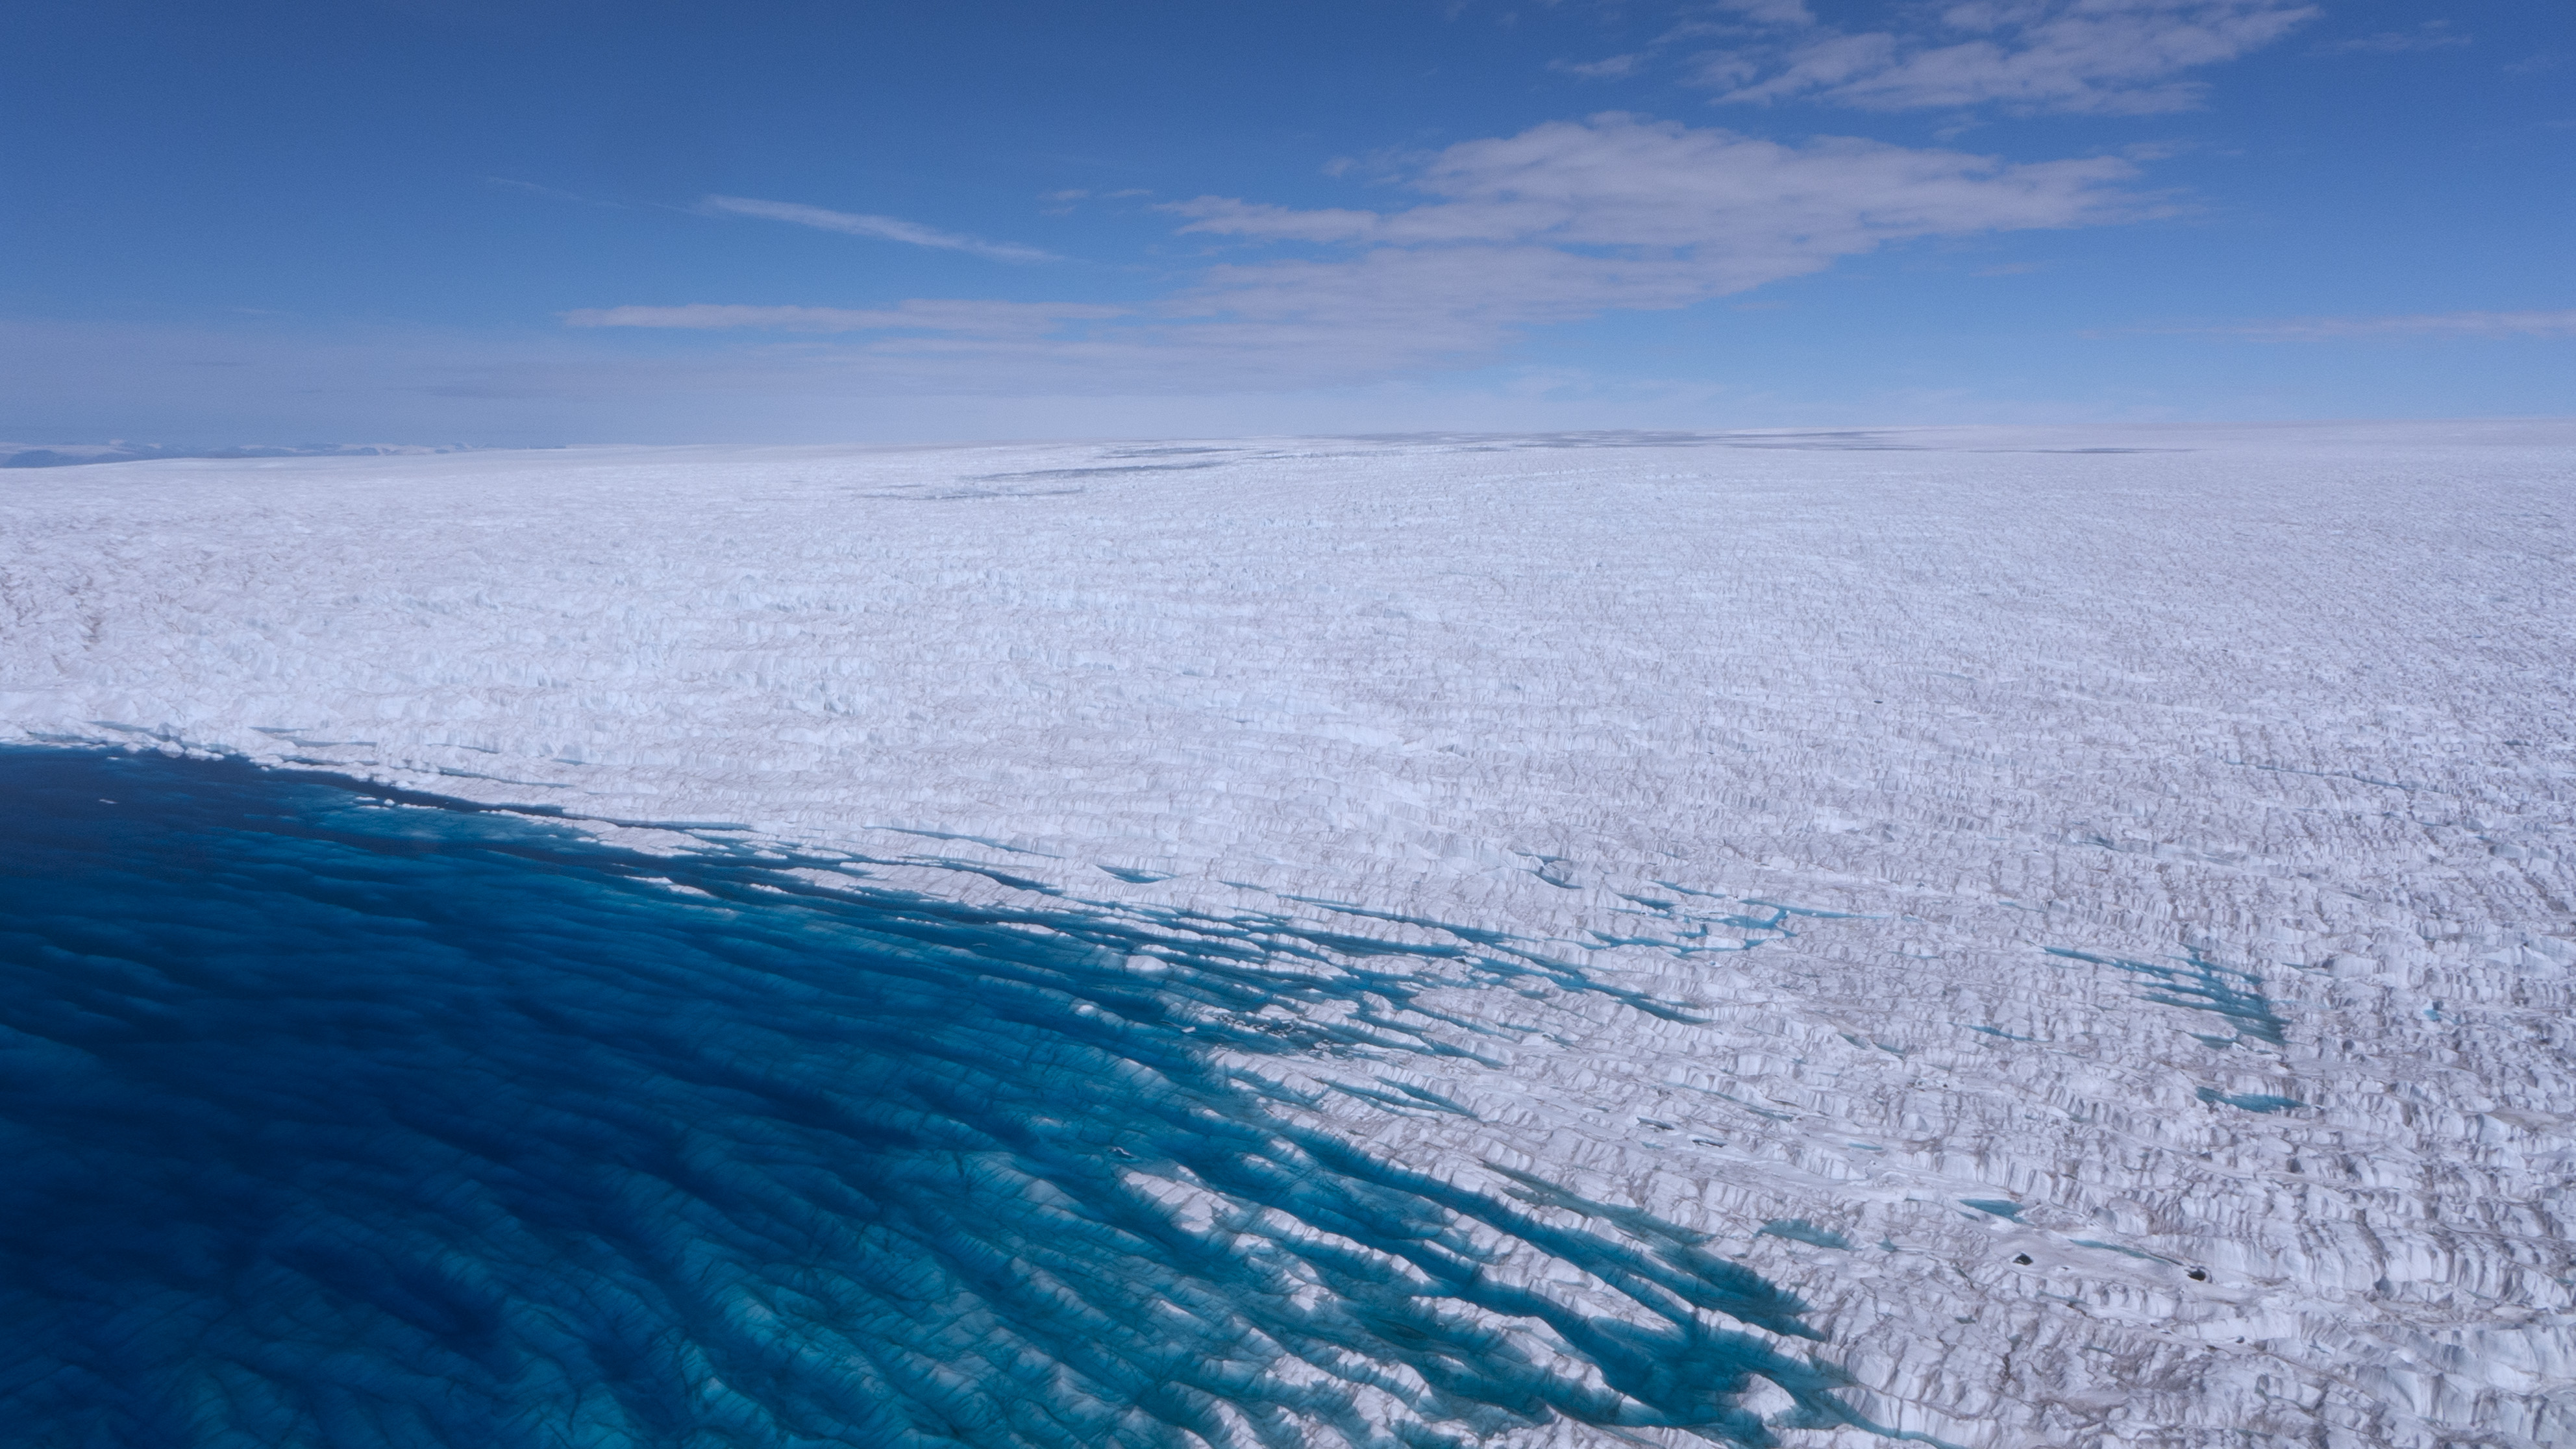 greenland ice sheet more vulnerable to climate change than